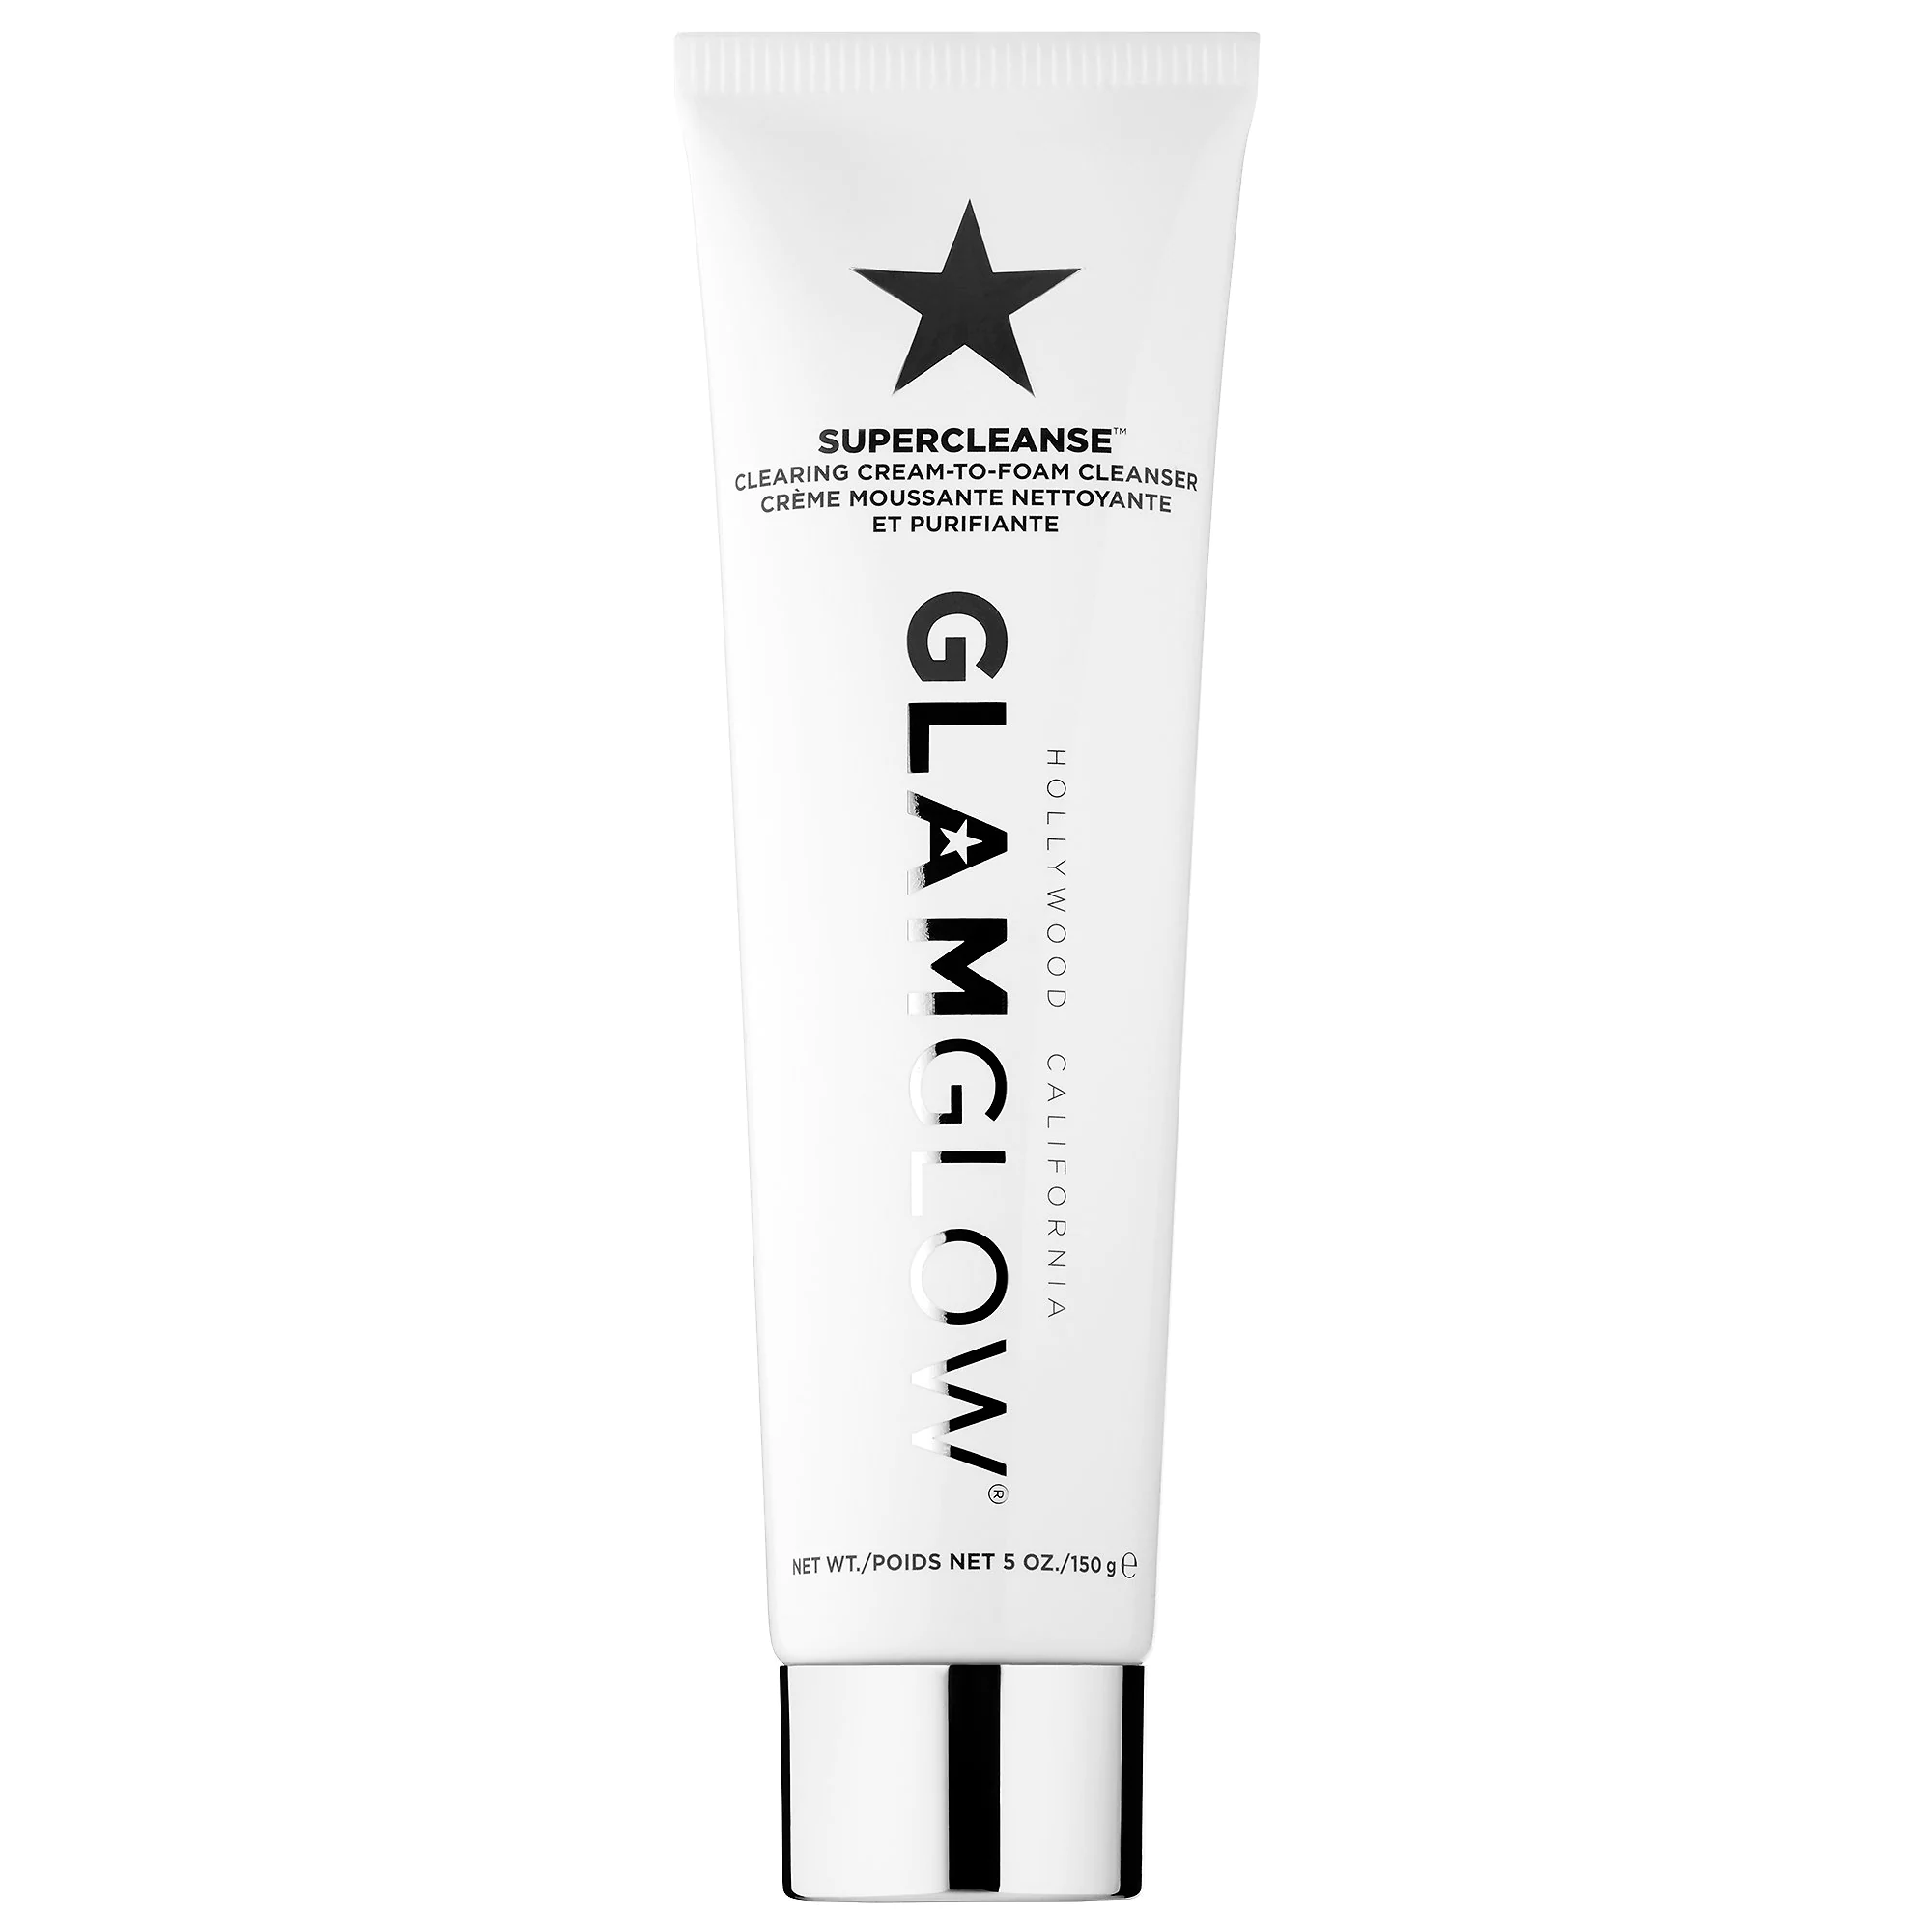 GLAMGLOW Supercleanse™ Clearing Cream-To-Foam Cleanser